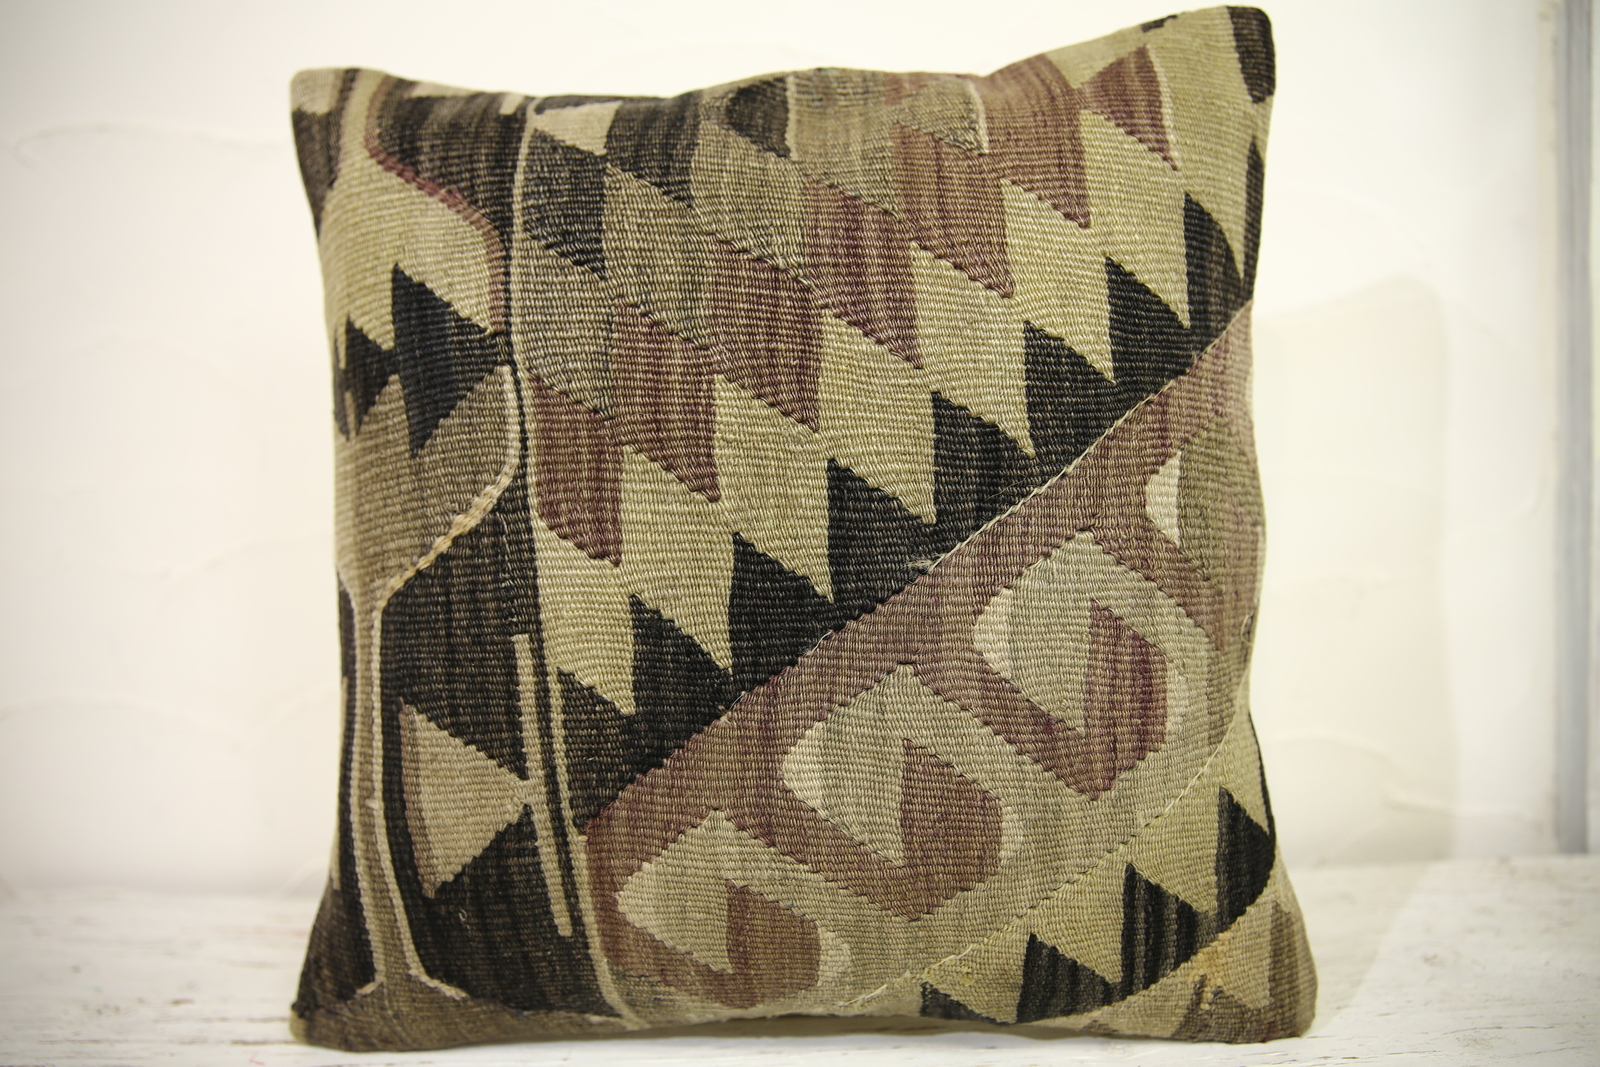 Kilim Pillows |16x16 | Decorative Pillows | 1098 | Accent Pillows turkish pillow